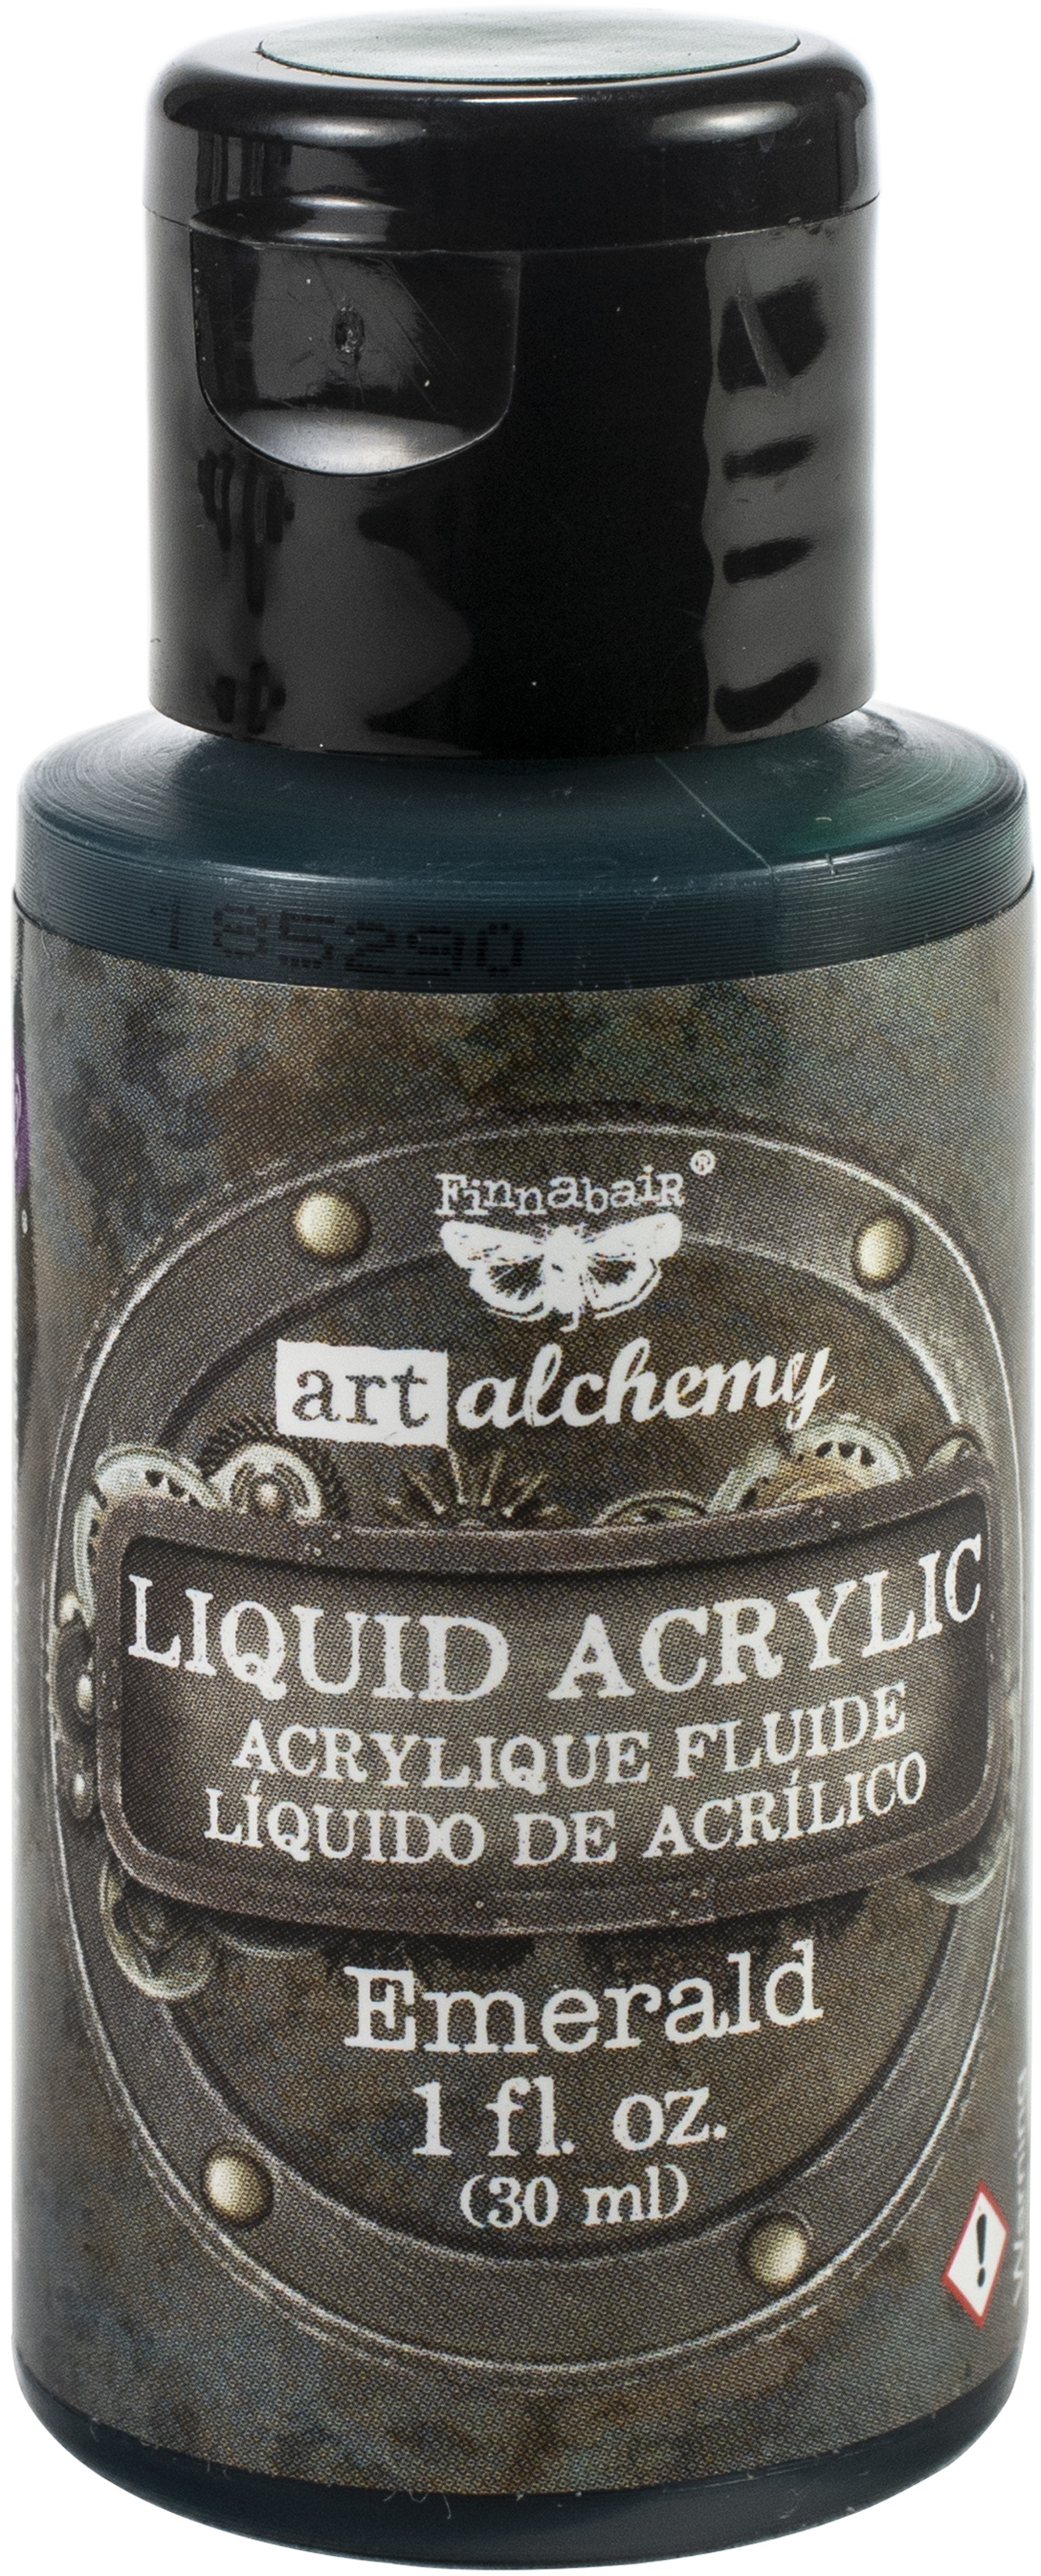 Art Alchemy Emerald